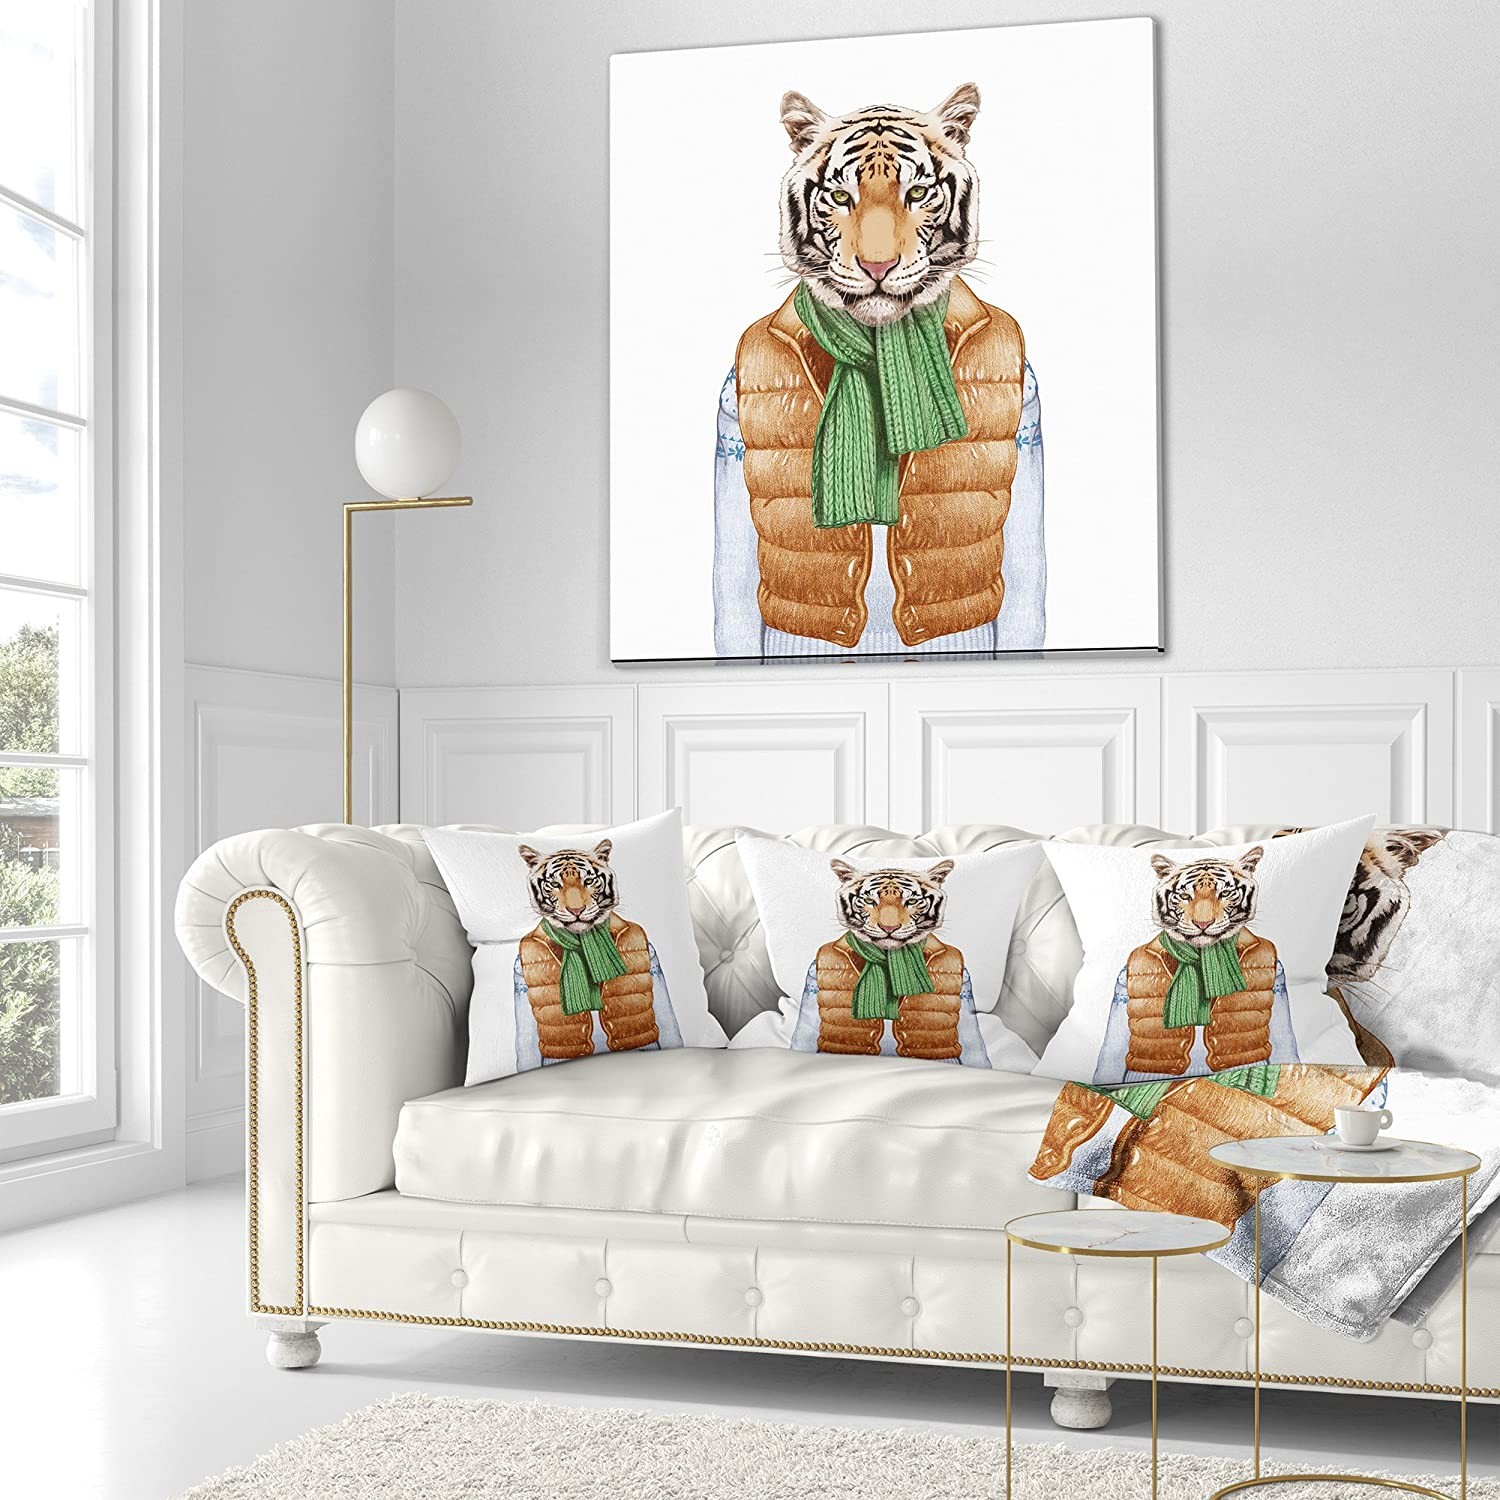 Designart CU13207-16-16 Tiger in Vest and Sweater Contemporary Animal Cushion Cover for Living Room Sofa Throw Pillow 16 in x 16 in in